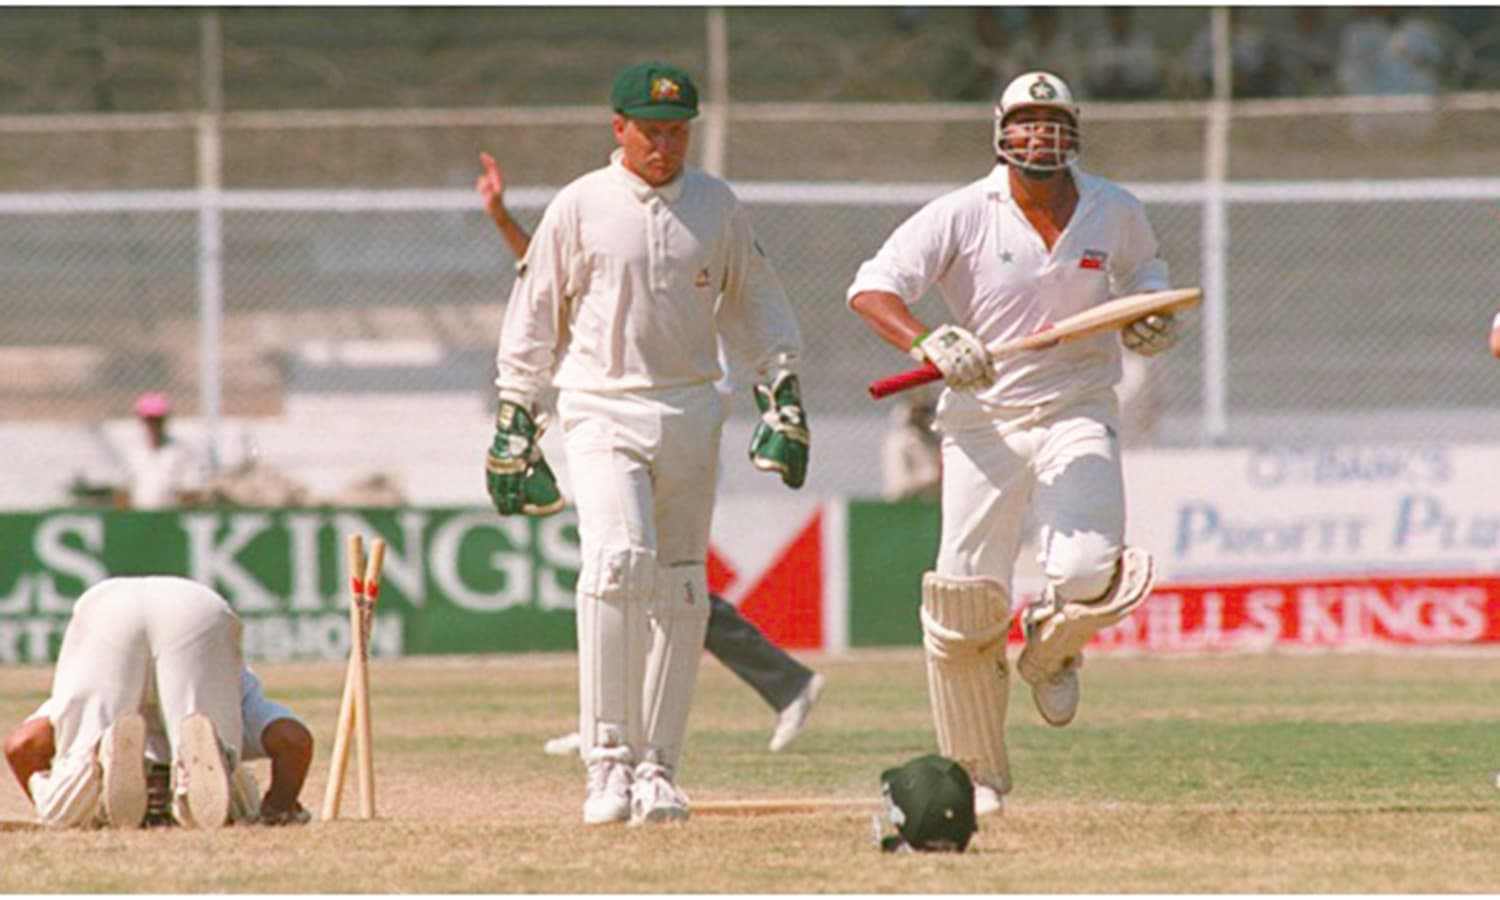 1994: Pakistan scrap through to a nail-biting win against Australia at the National Stadium. (Pic: The Cricketer Pakistan)